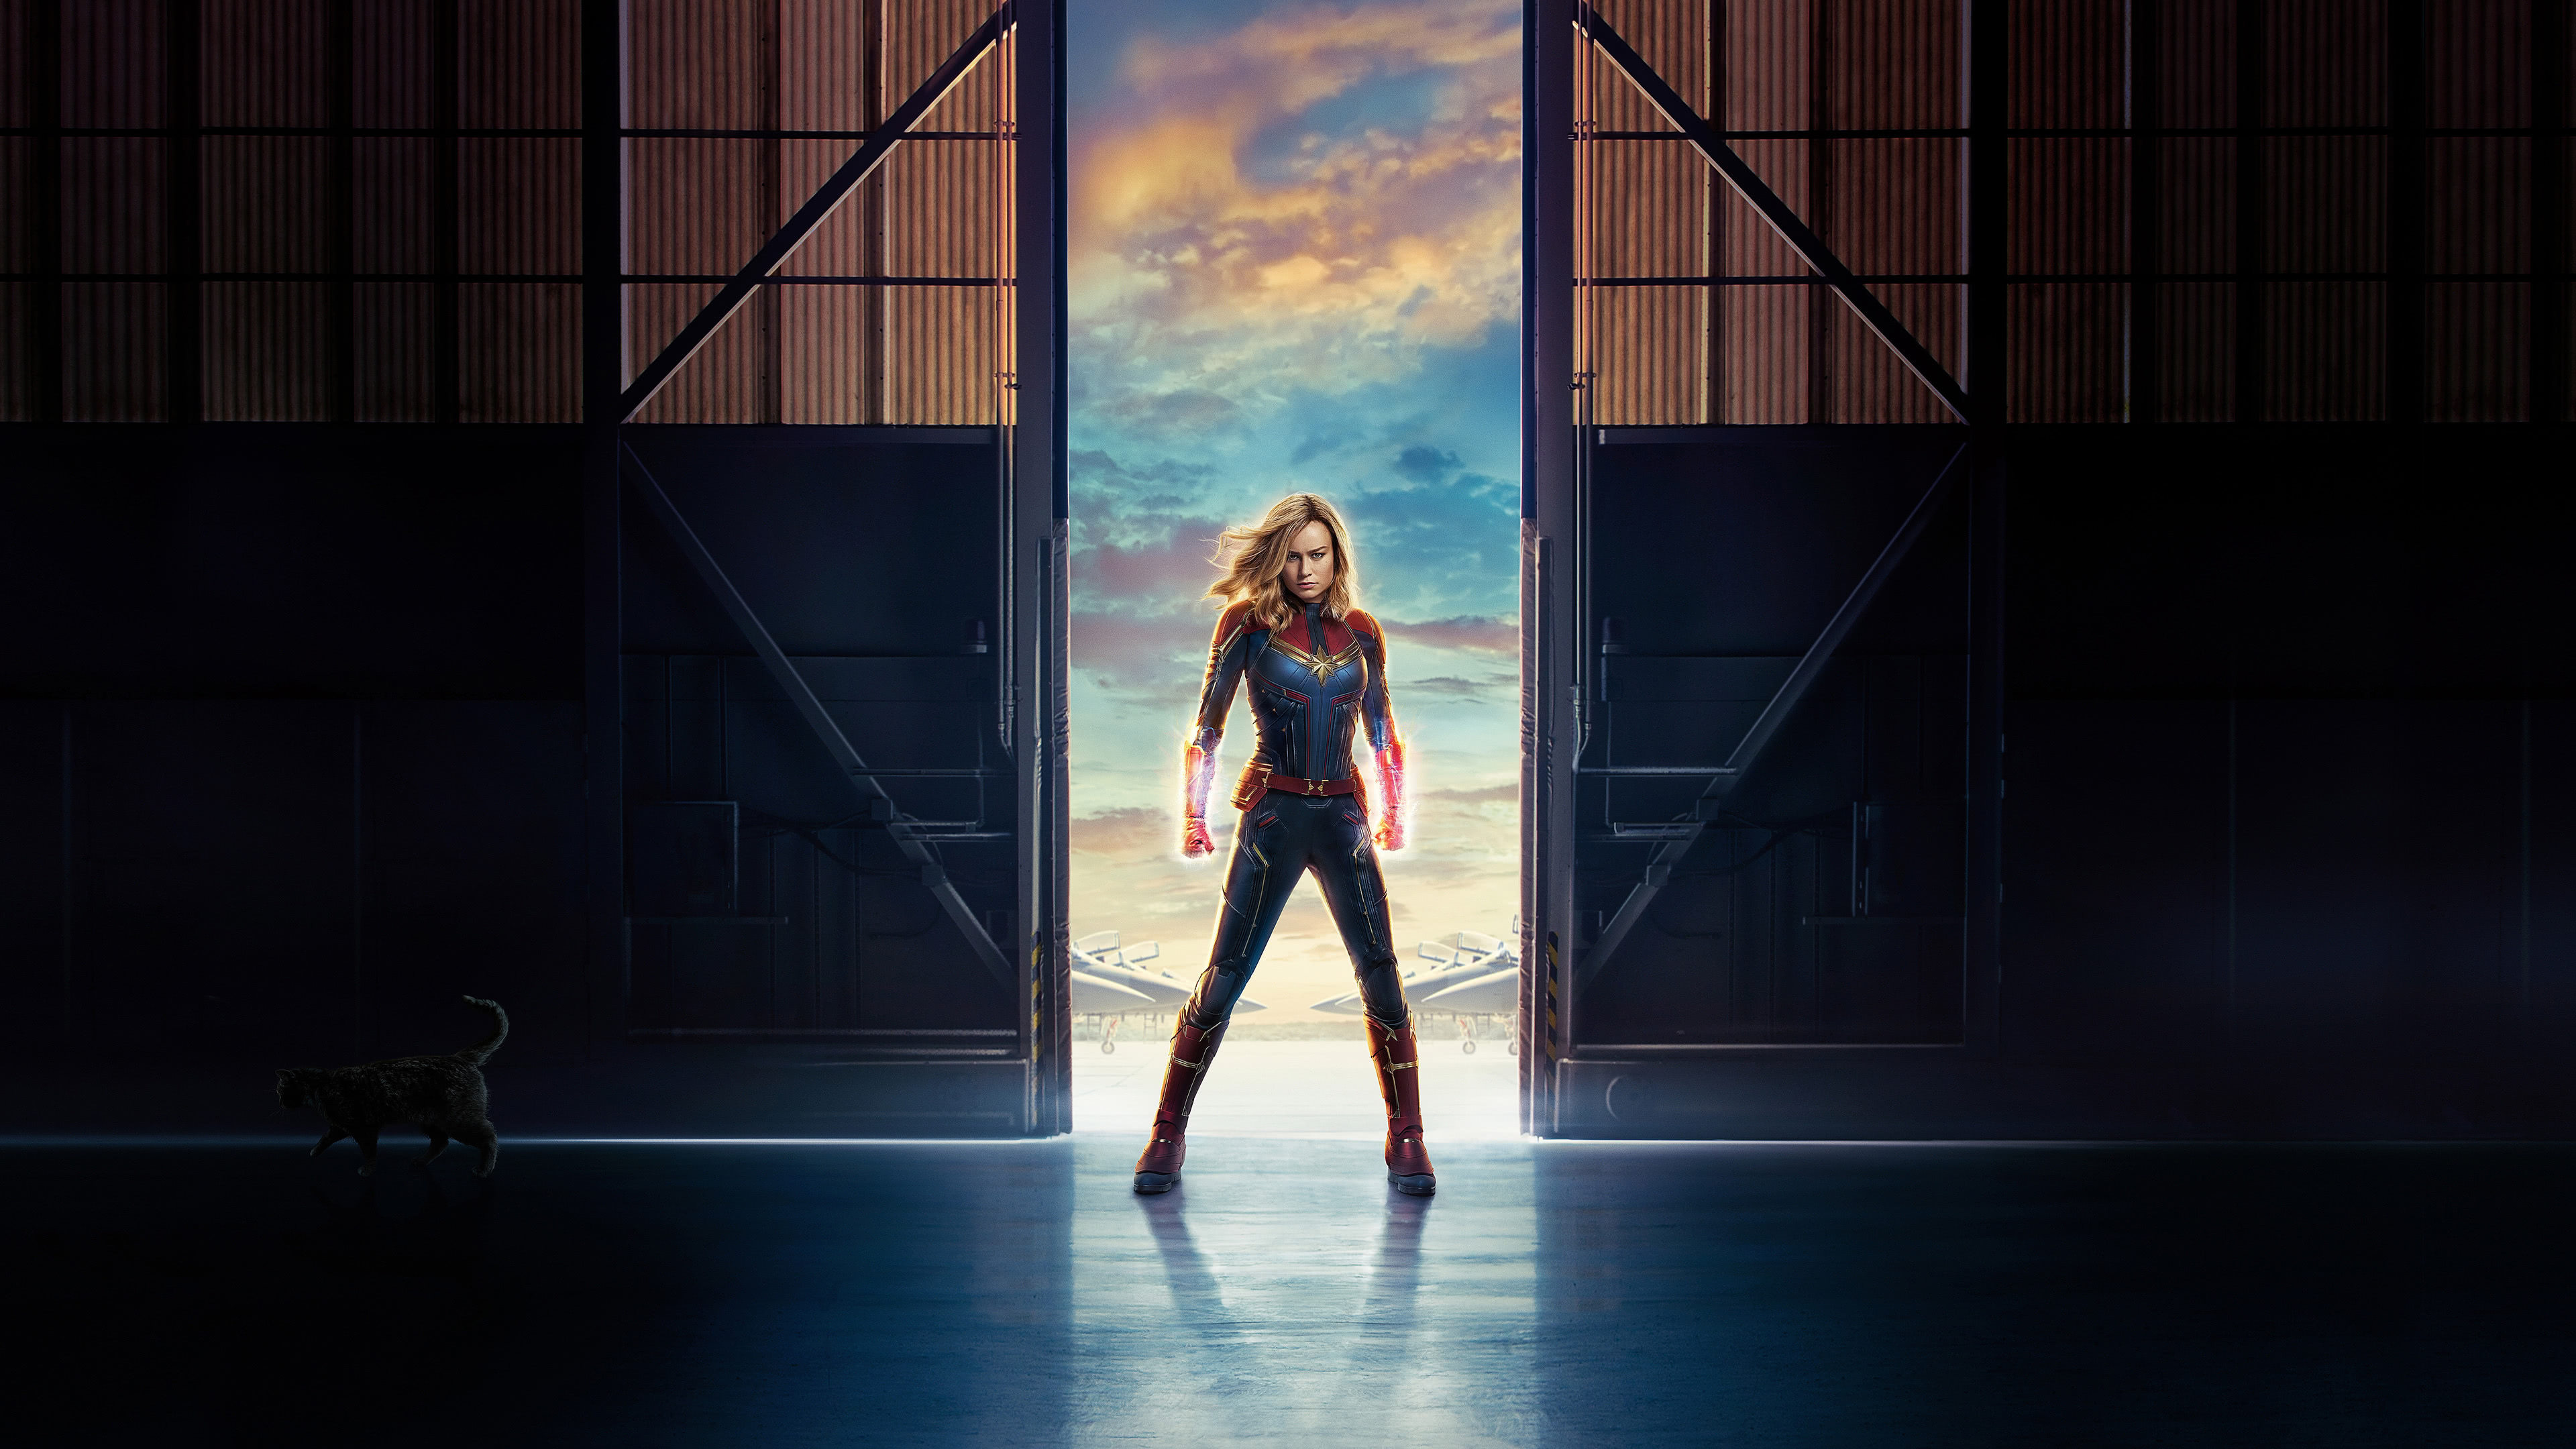 captain marvel uhd 4k wallpaper